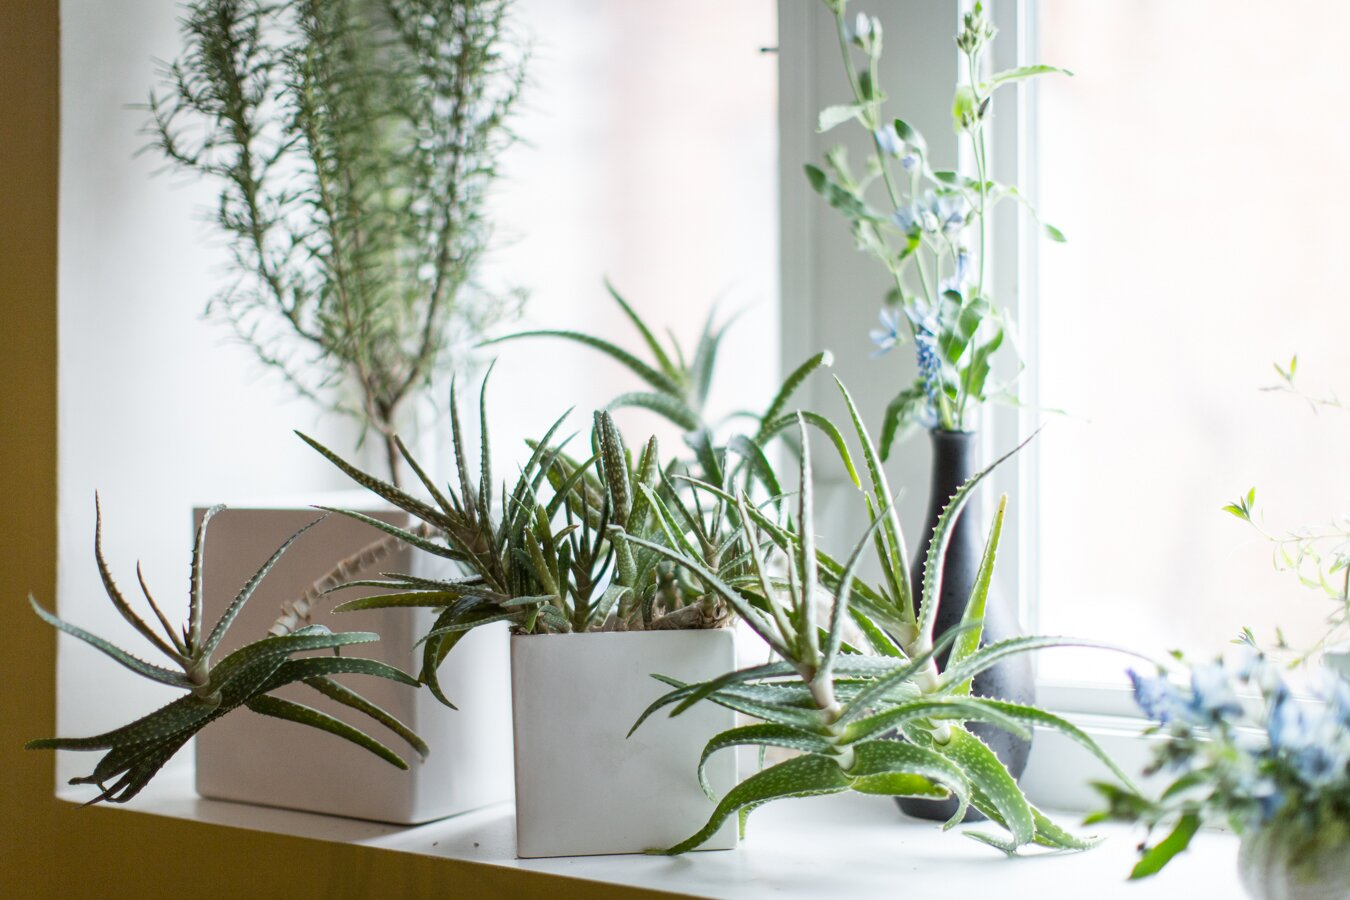 14 Hardy Houseplants That Will Survive the Winter on green house lamps, green potted plants, green medicinal plants, living room plants, types of plants, green leafy houseplants, green house cars, indoor plants, green shade gardens, green plants for shade, green house trees, green arrow plants, green climbing plants, green house in hands, green leaf plants, green house space, green lady plant, green foliage plants, green plants names, green gift plants,